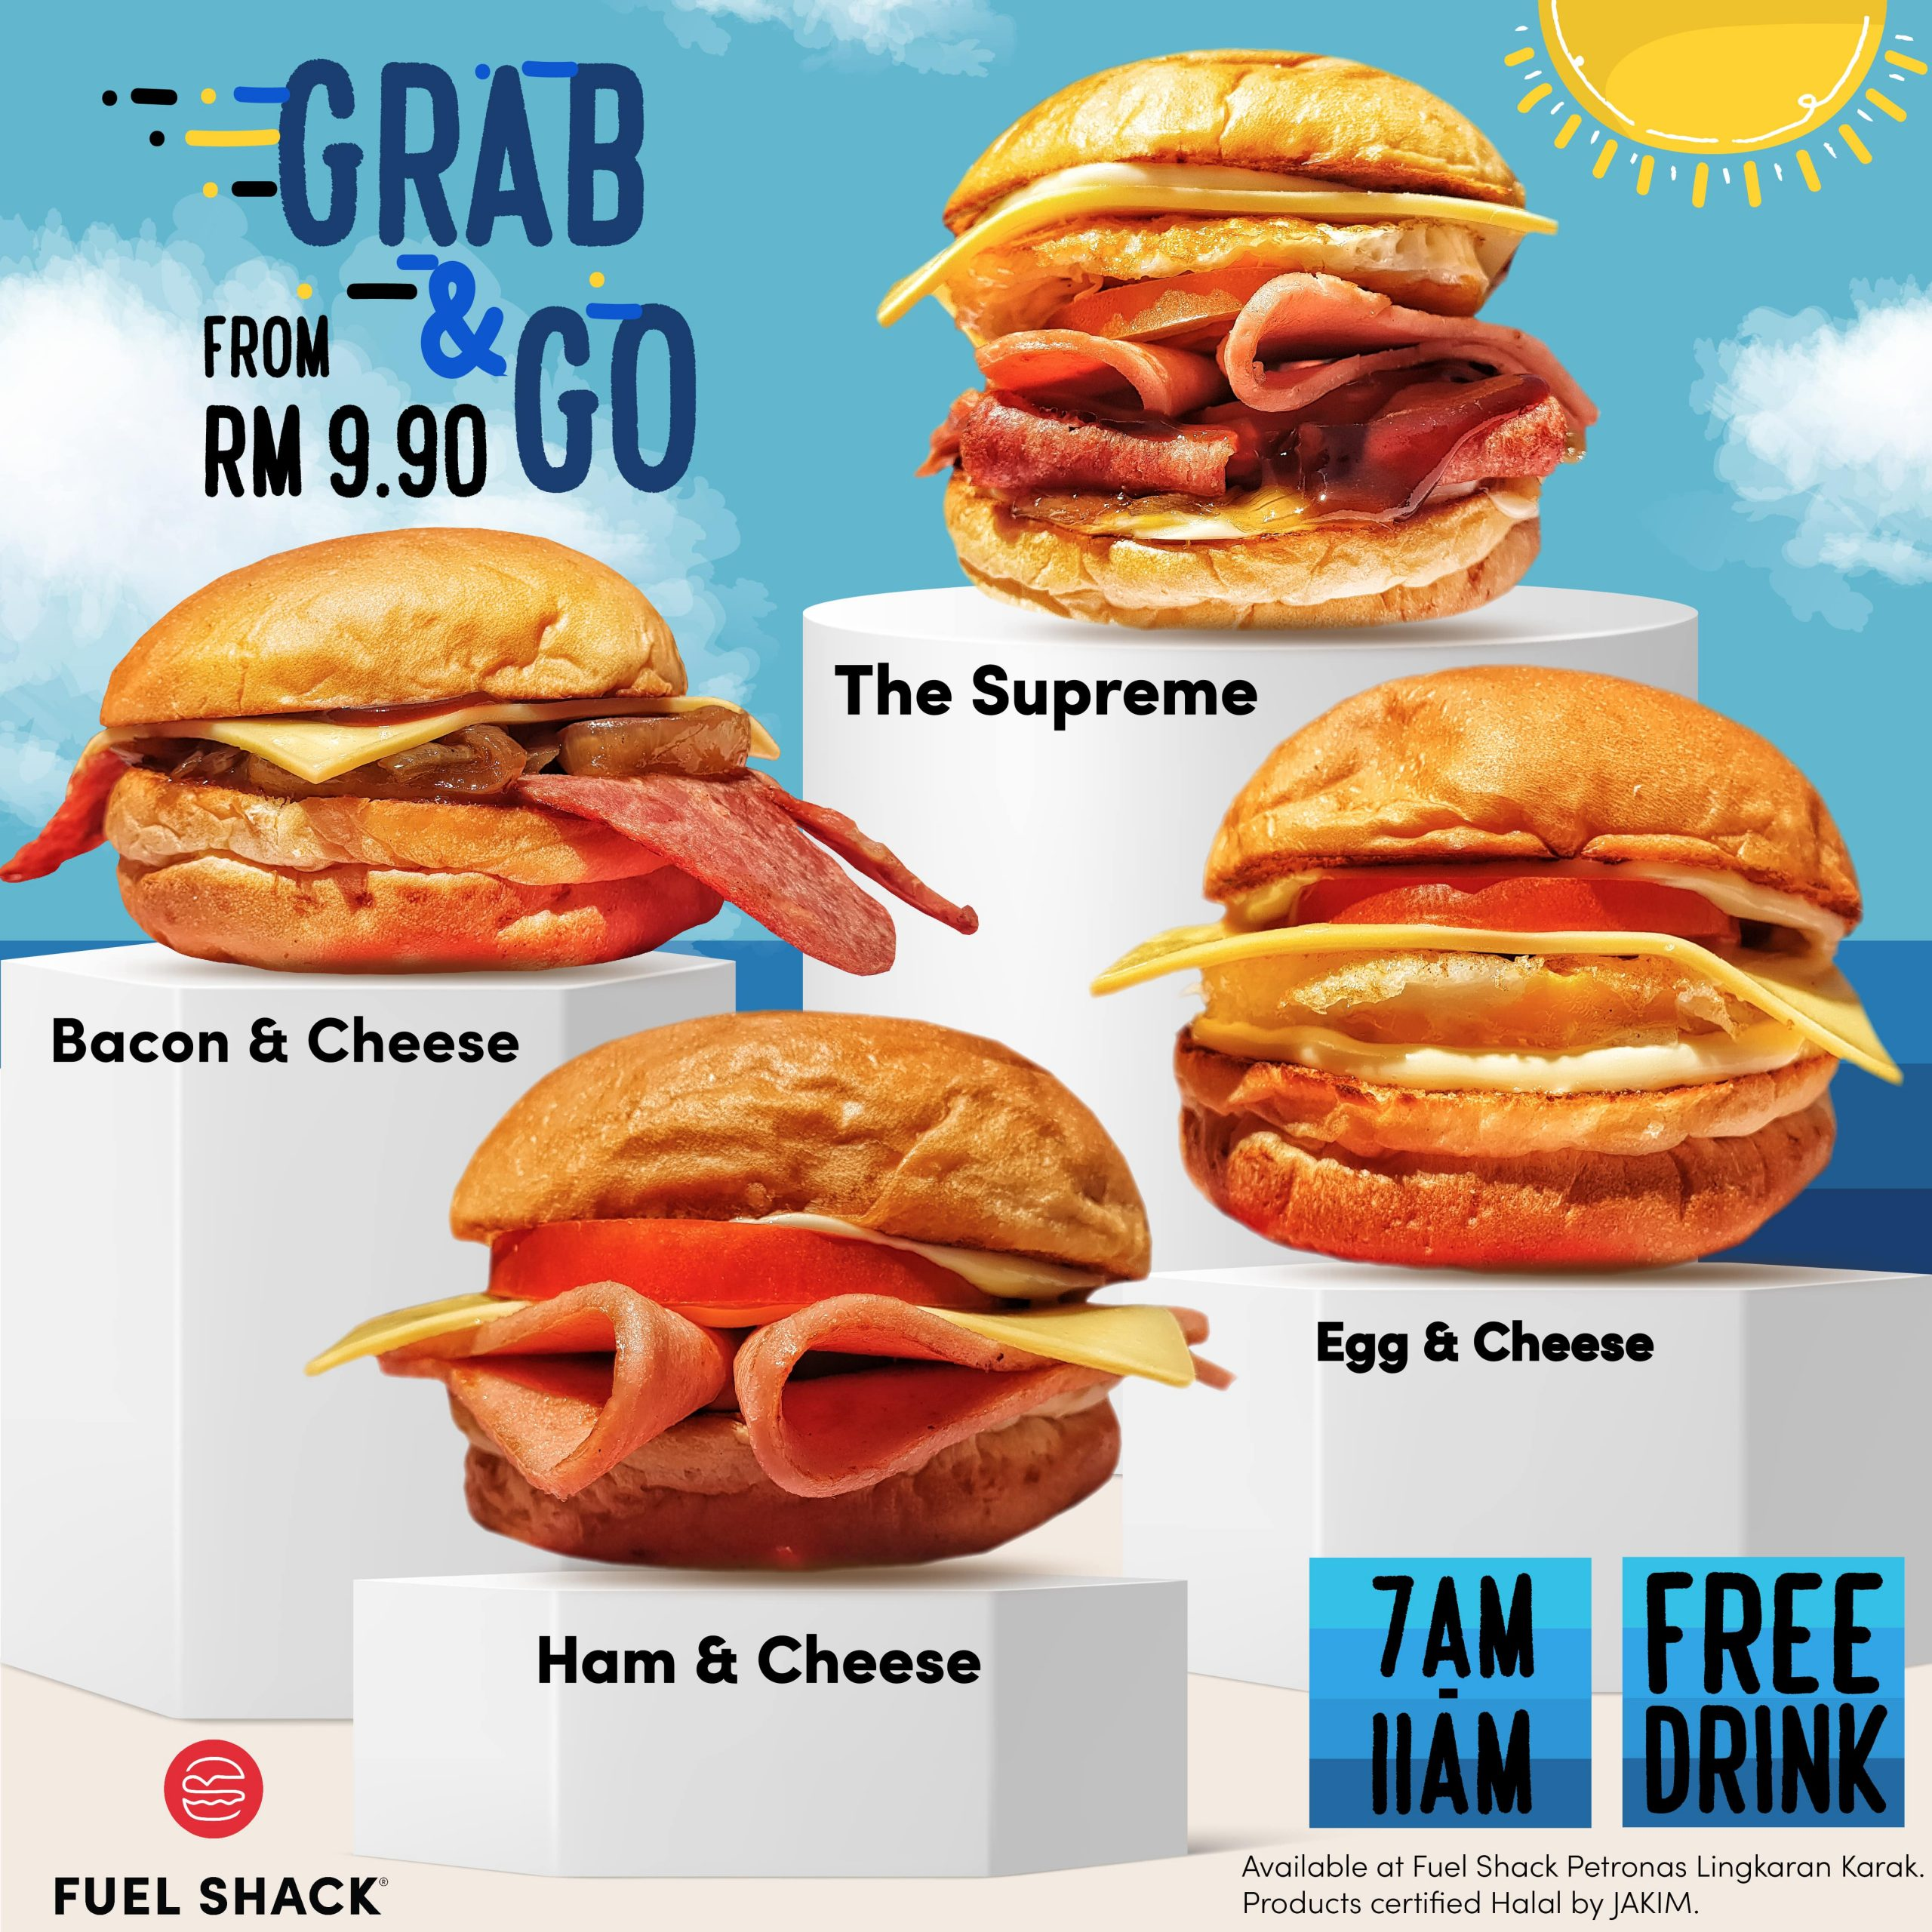 A New Grab & Go Breakfast Menu That Will Blow Your Mind